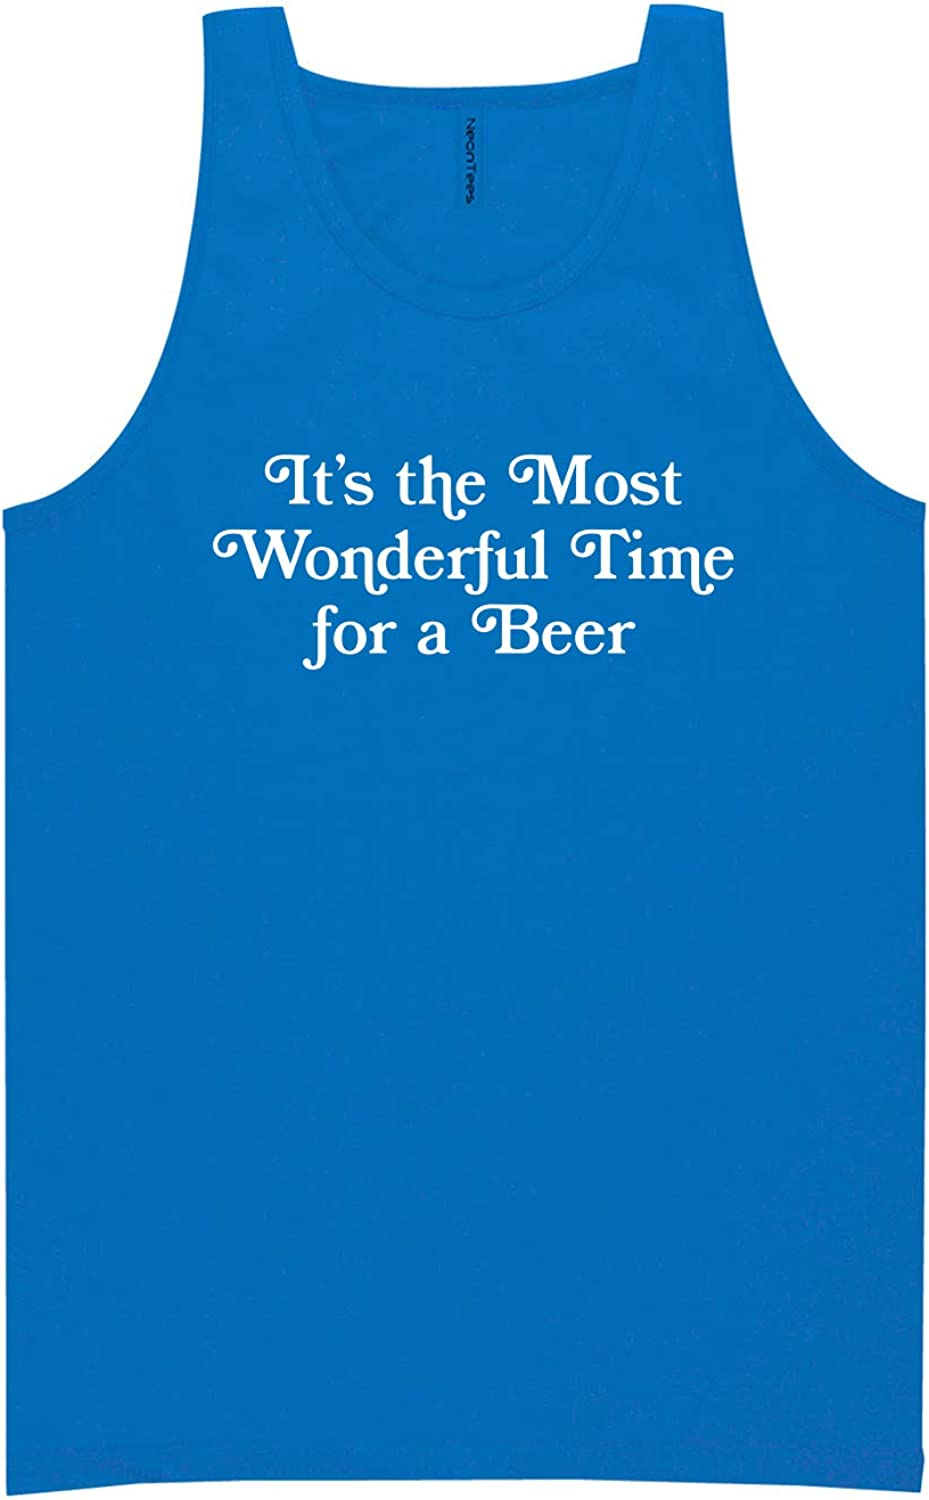 It's The Most Wonderful Time Neon Blue Tank Top - XX-Large